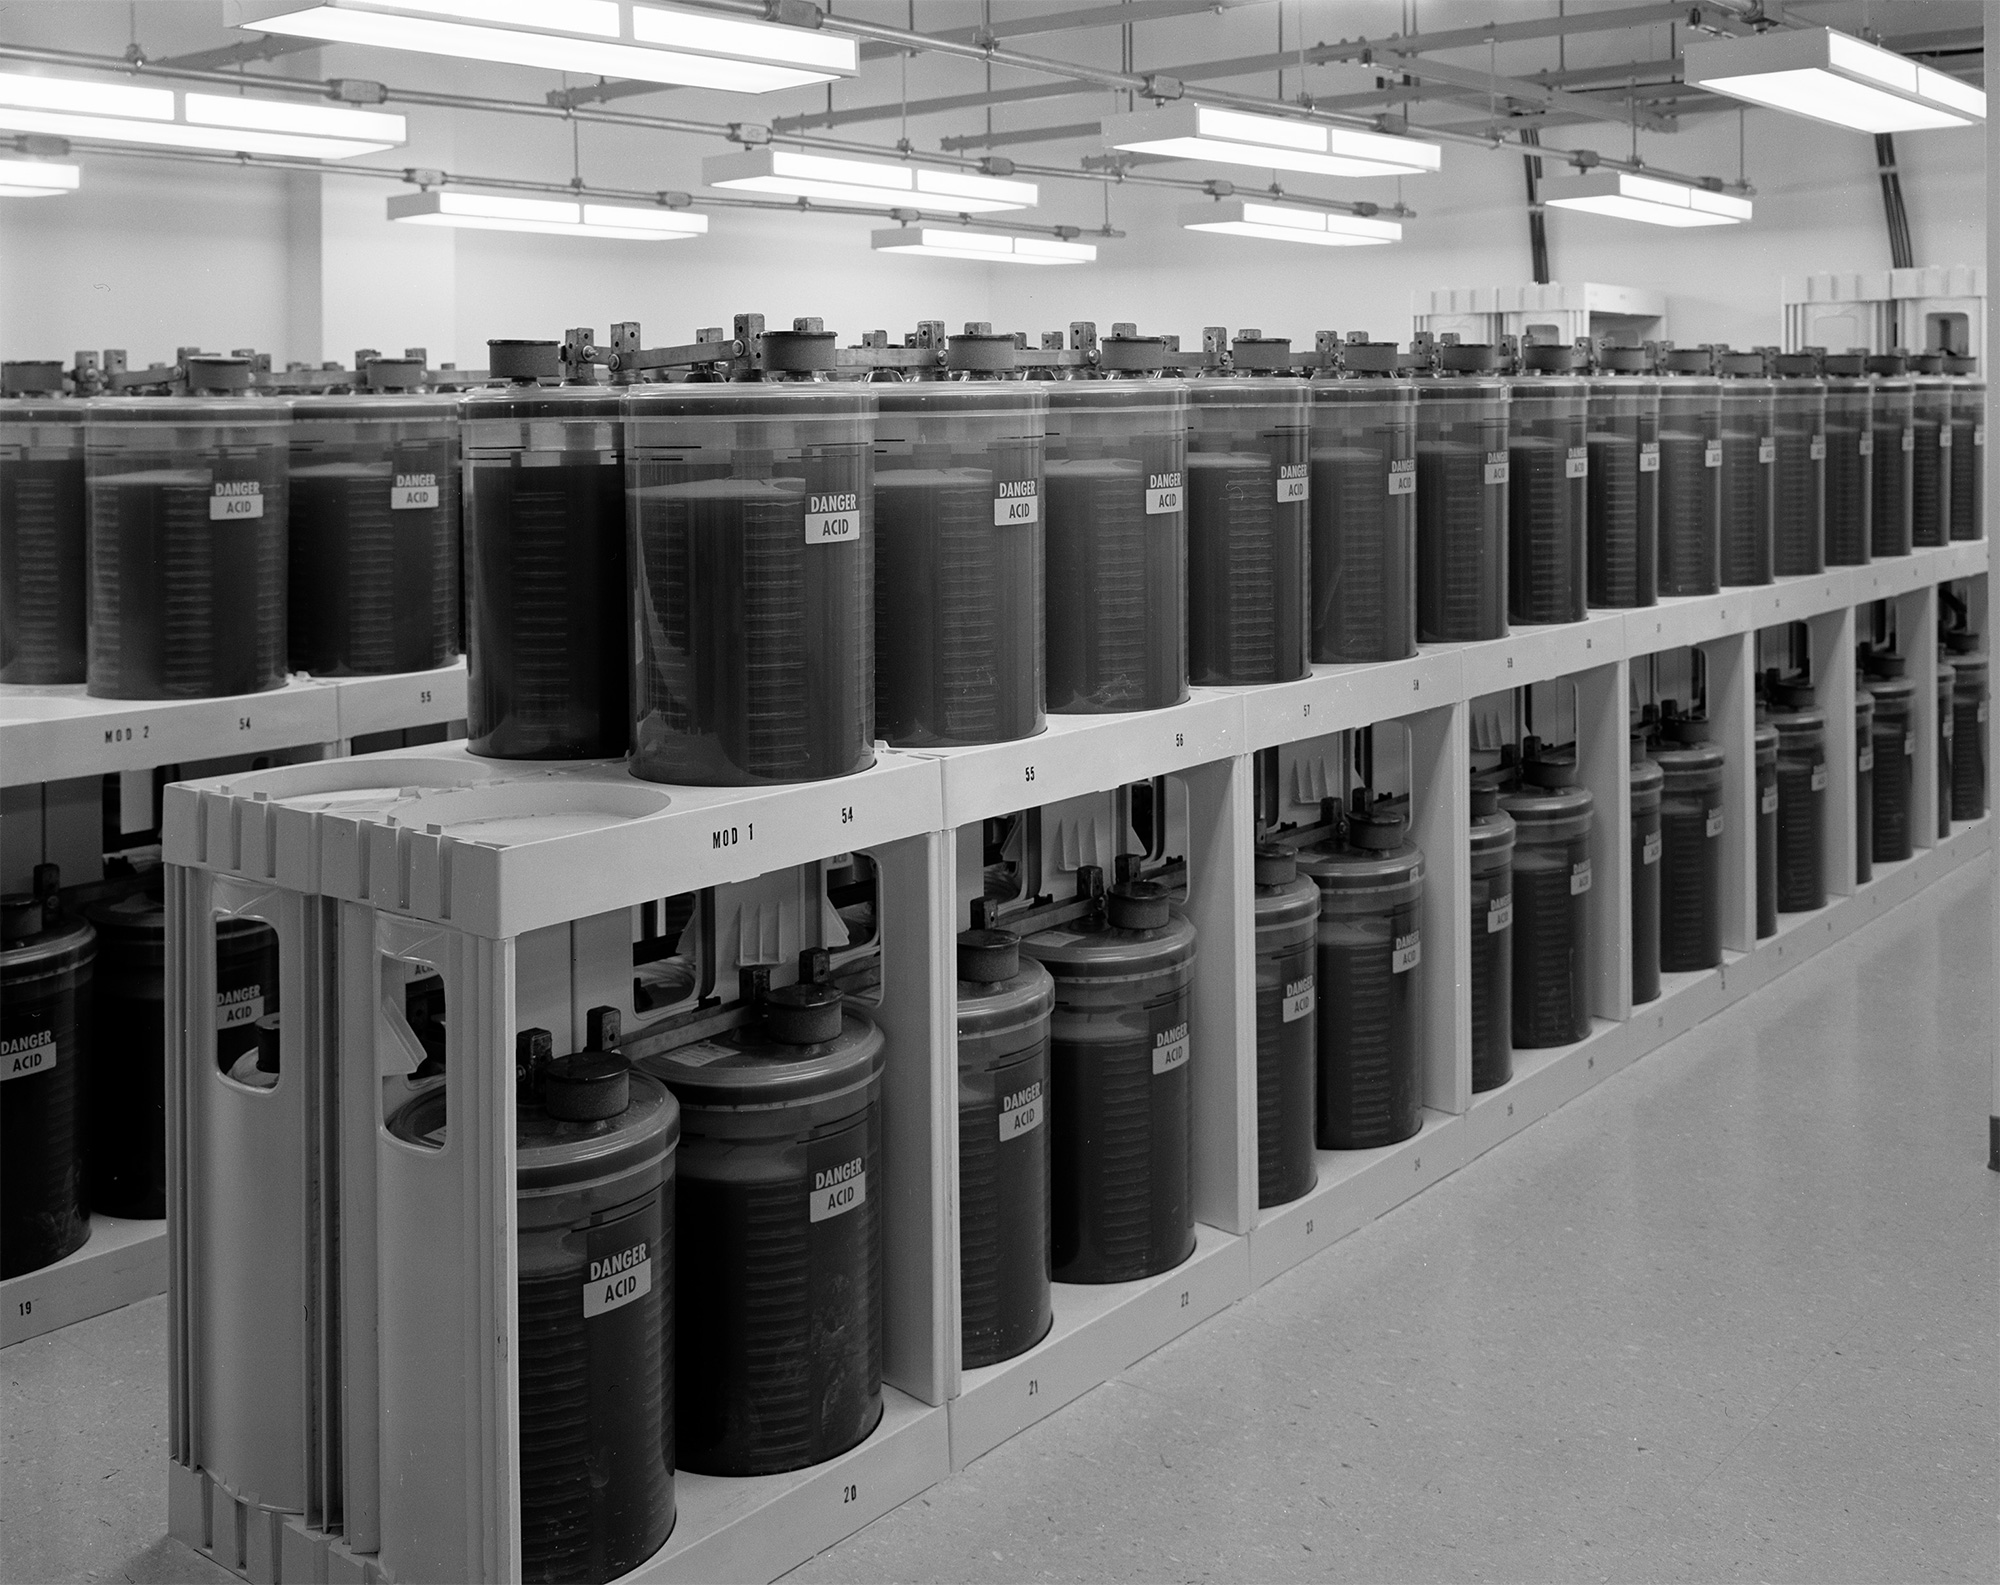 Backup batteries fill entire rooms of 33 Thomas, stored in case of an emergency. Credit: Stanley Greenberg via The Intercept.